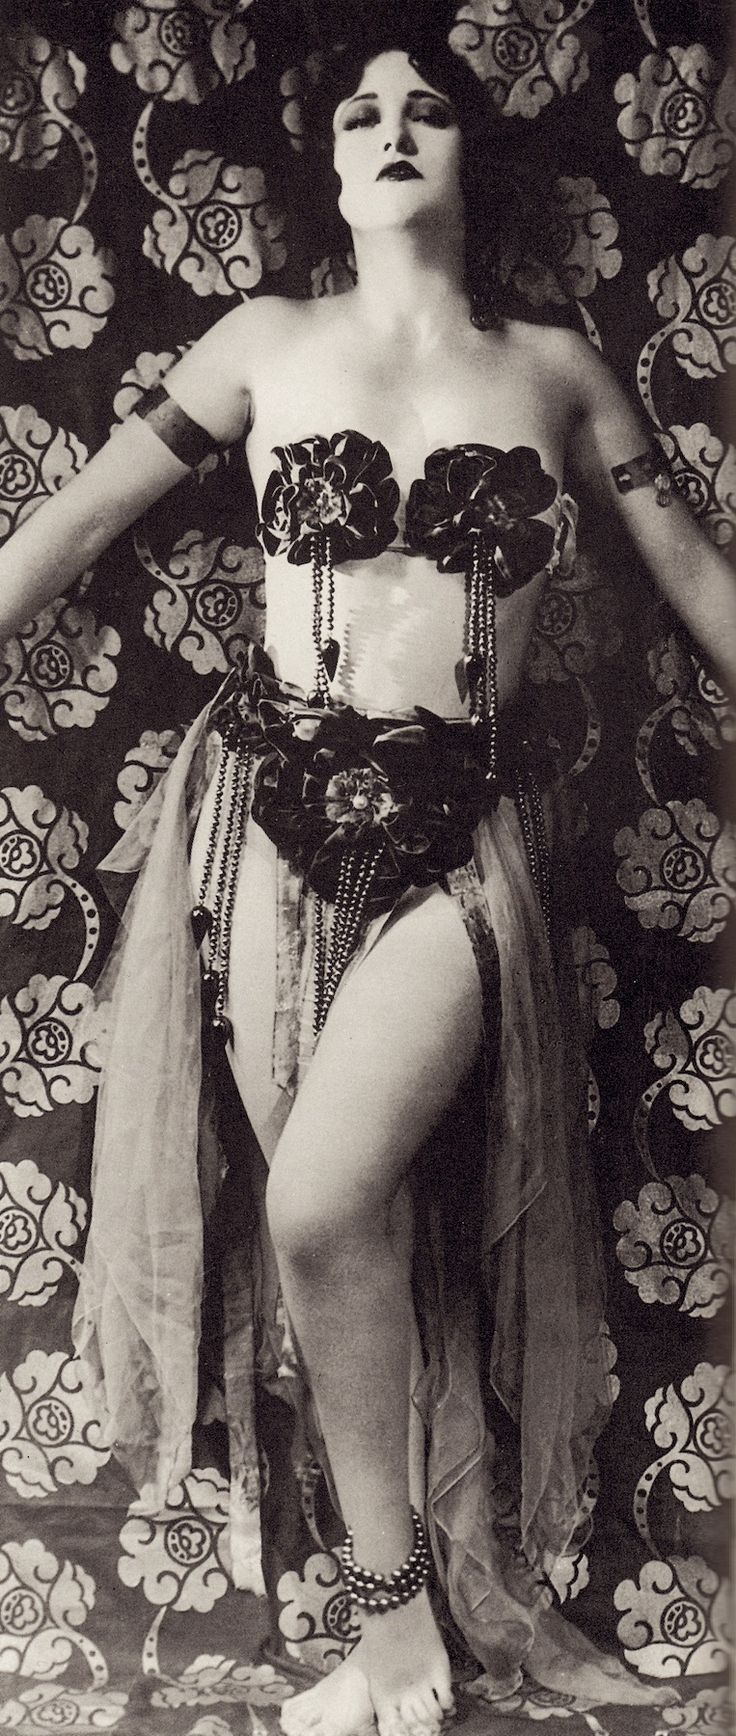 JOAN CRAWFORD mid 1920's giving us the full VAMP treatment, wearing much less than normal. From Joan Crawford The Ultimate Star by Alexander Walker. (minkshmink)